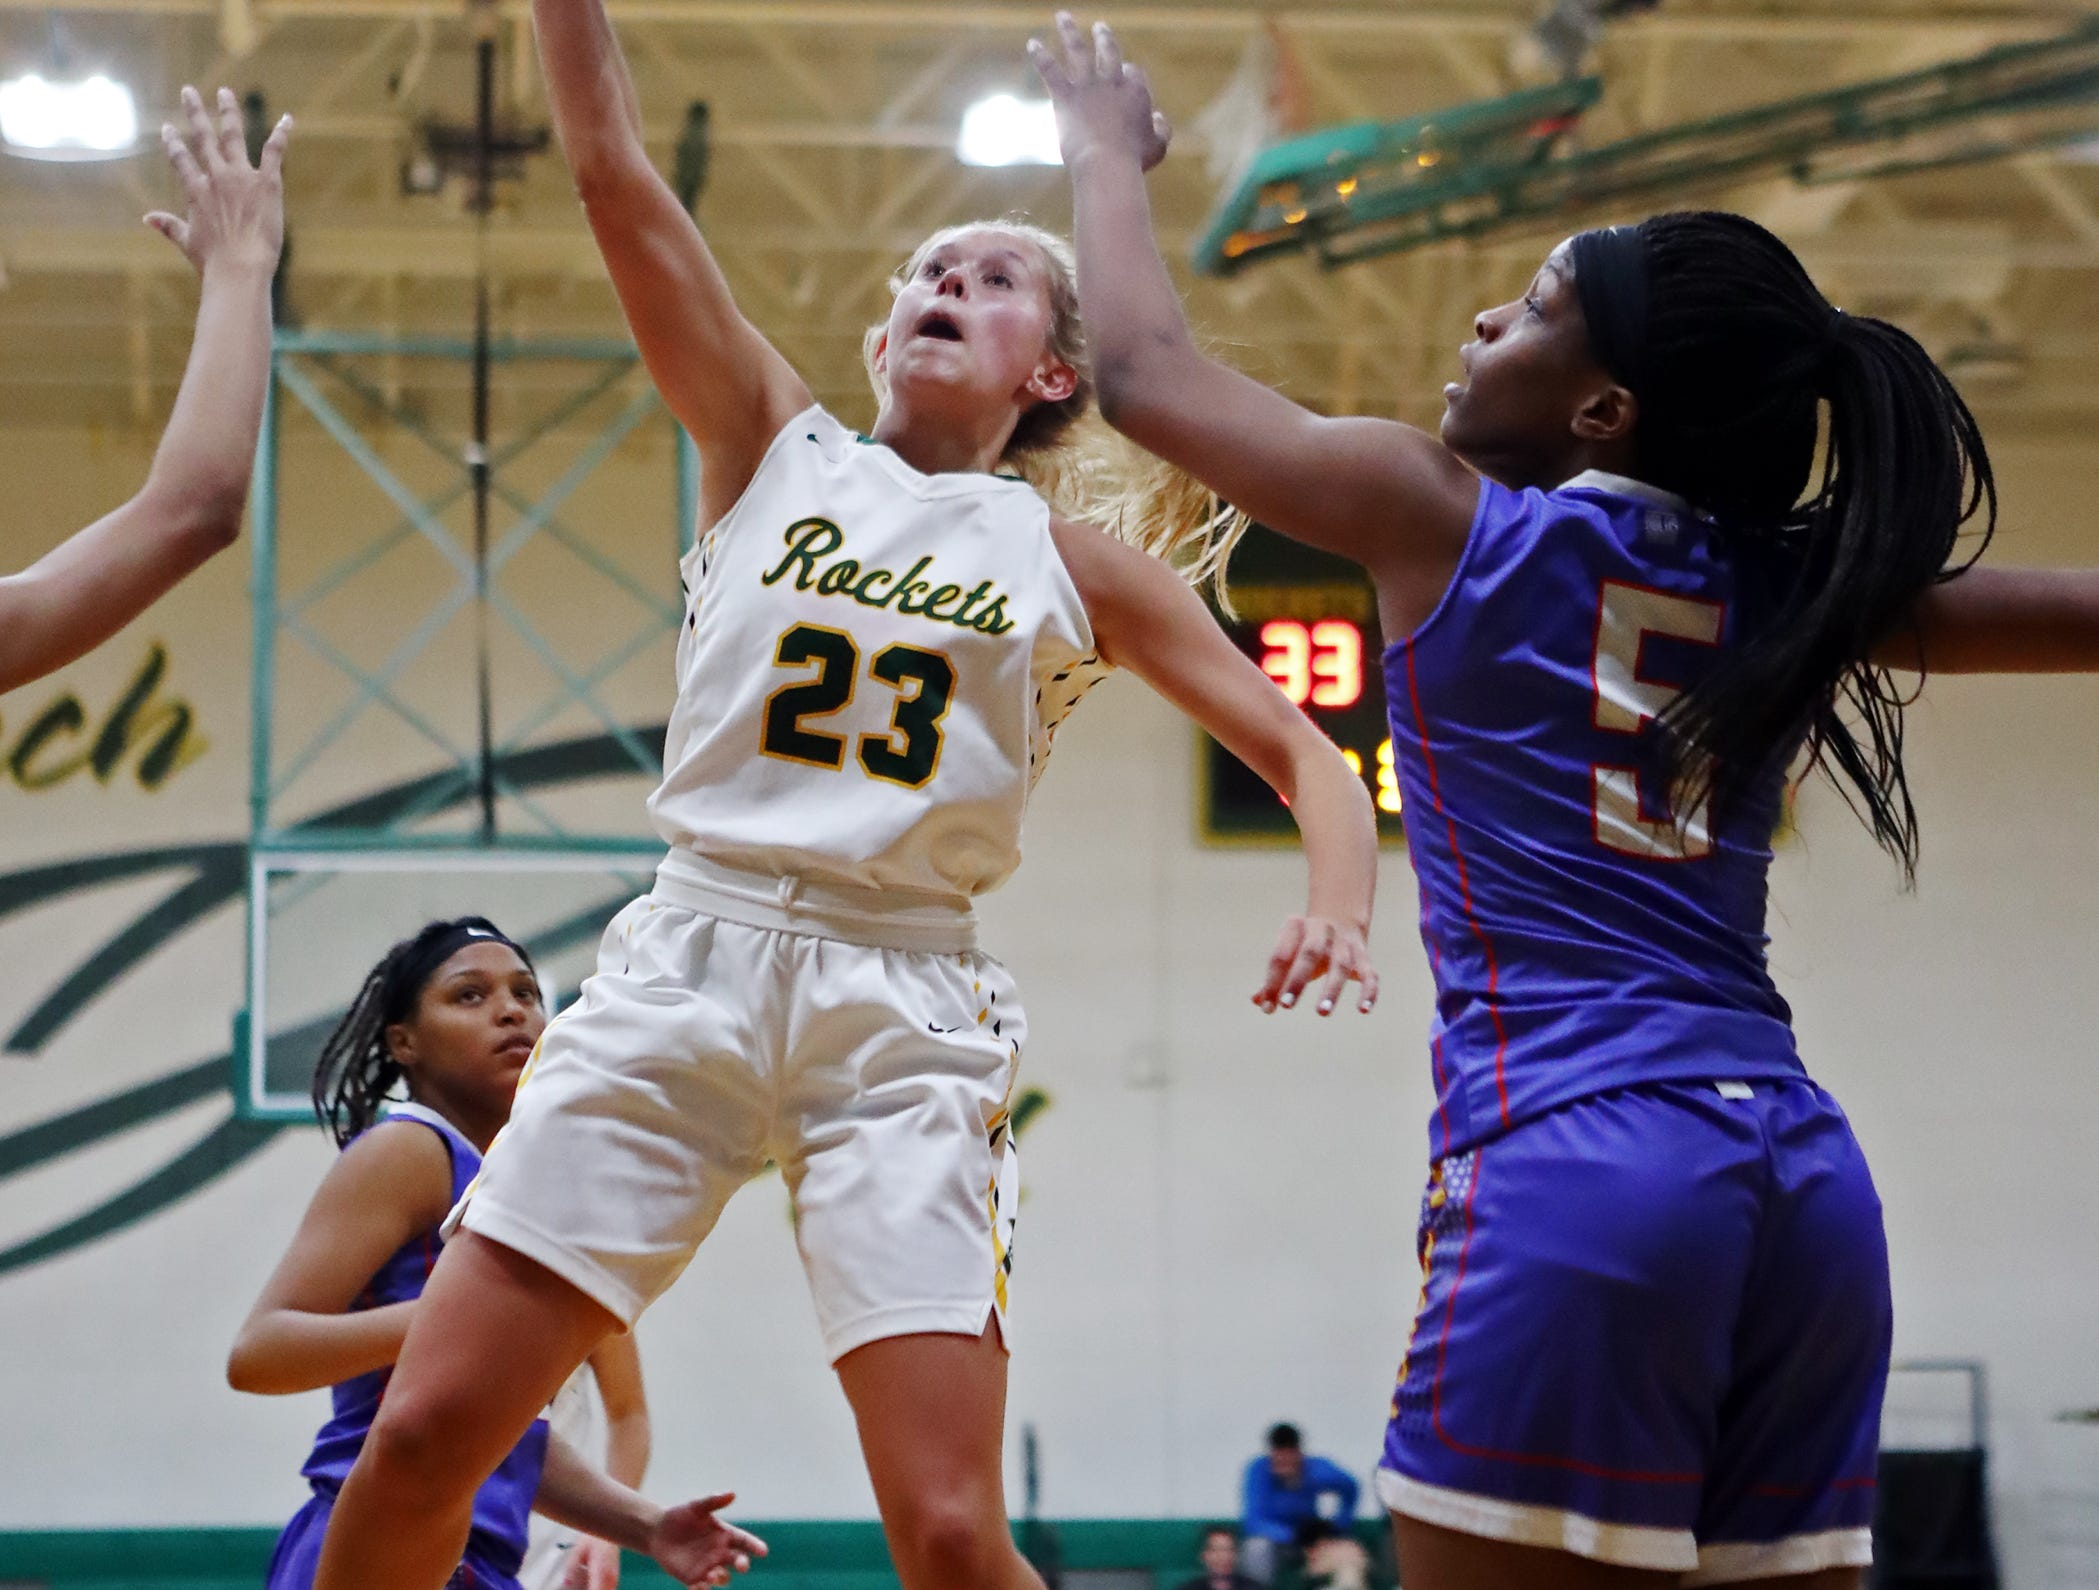 McNicholas forward Christina Poole drives and scores. McNicholas upset Purcell 51-50.